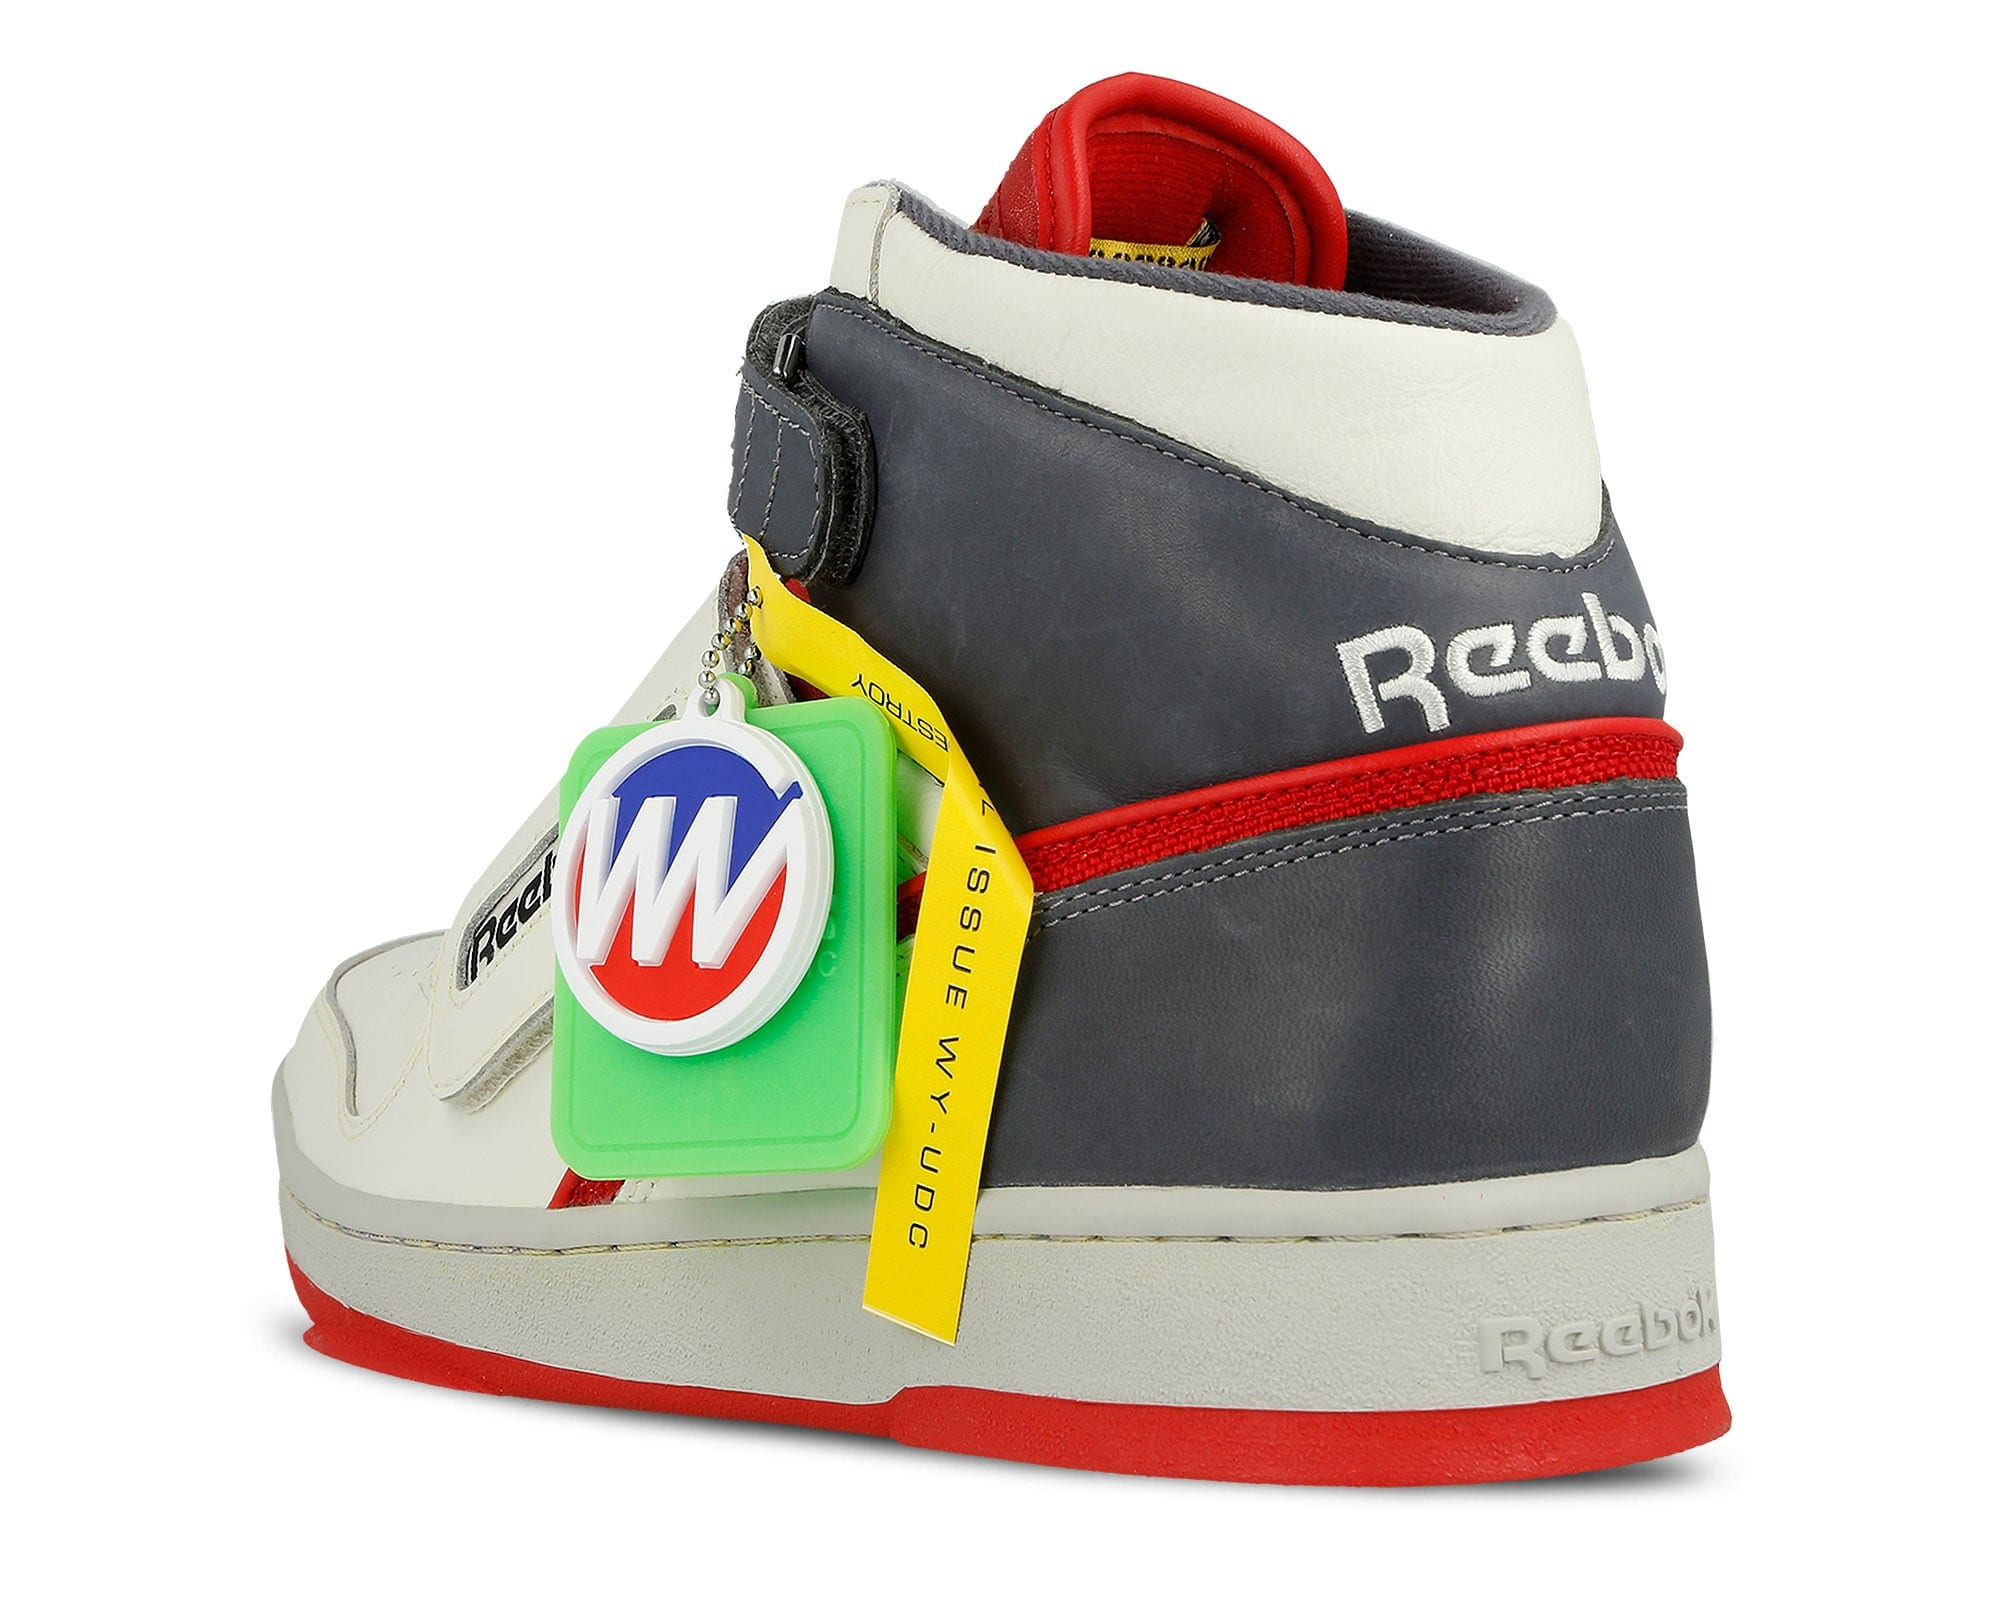 Reebok Alien Stomper Bishop Edition '40th Anniversary' DV8578 (Heel)